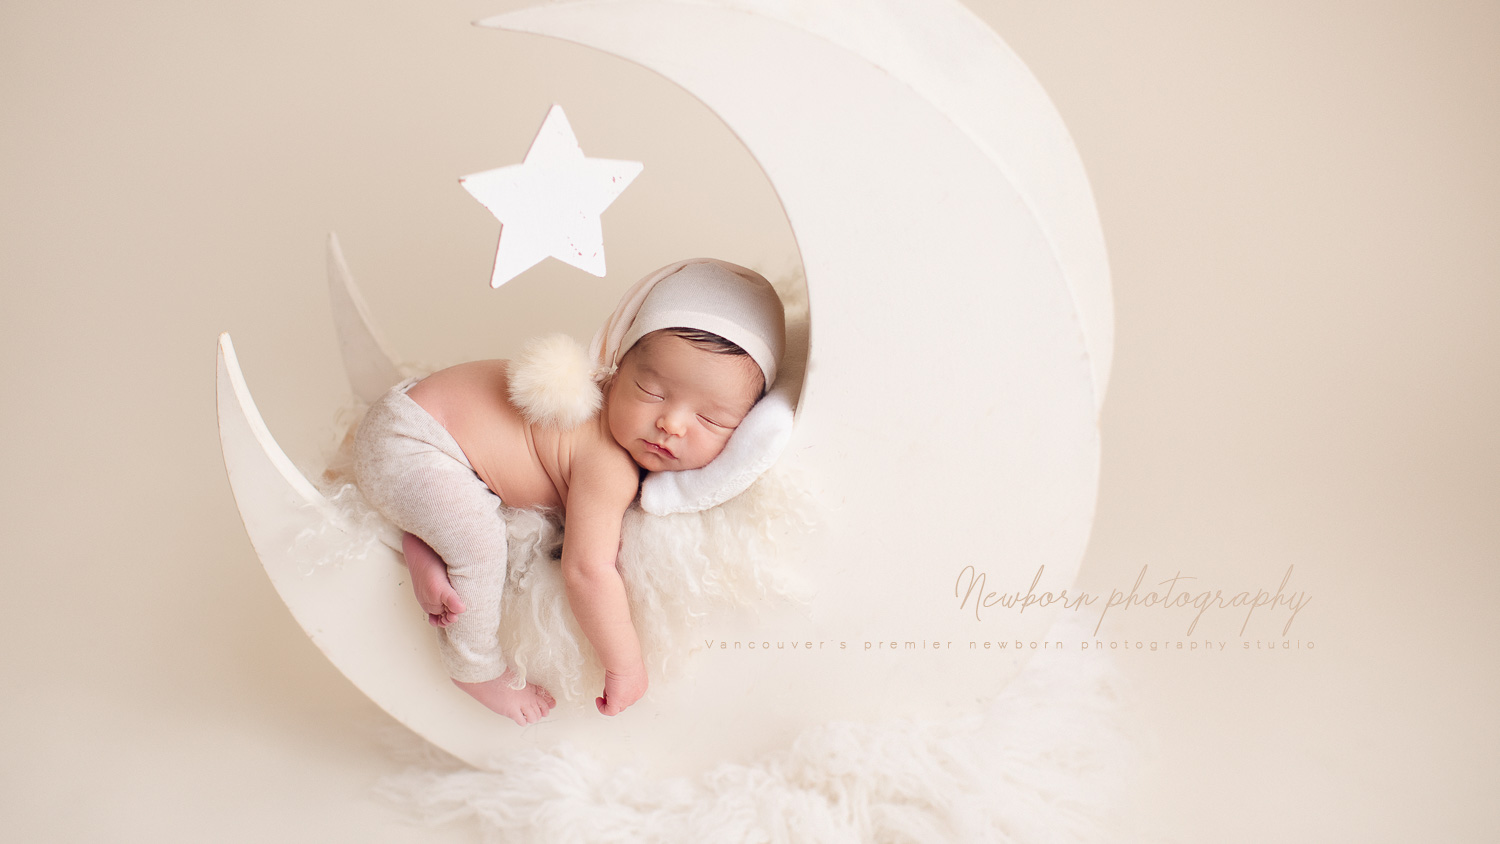 jana-newborn-photography-home-page-3-new